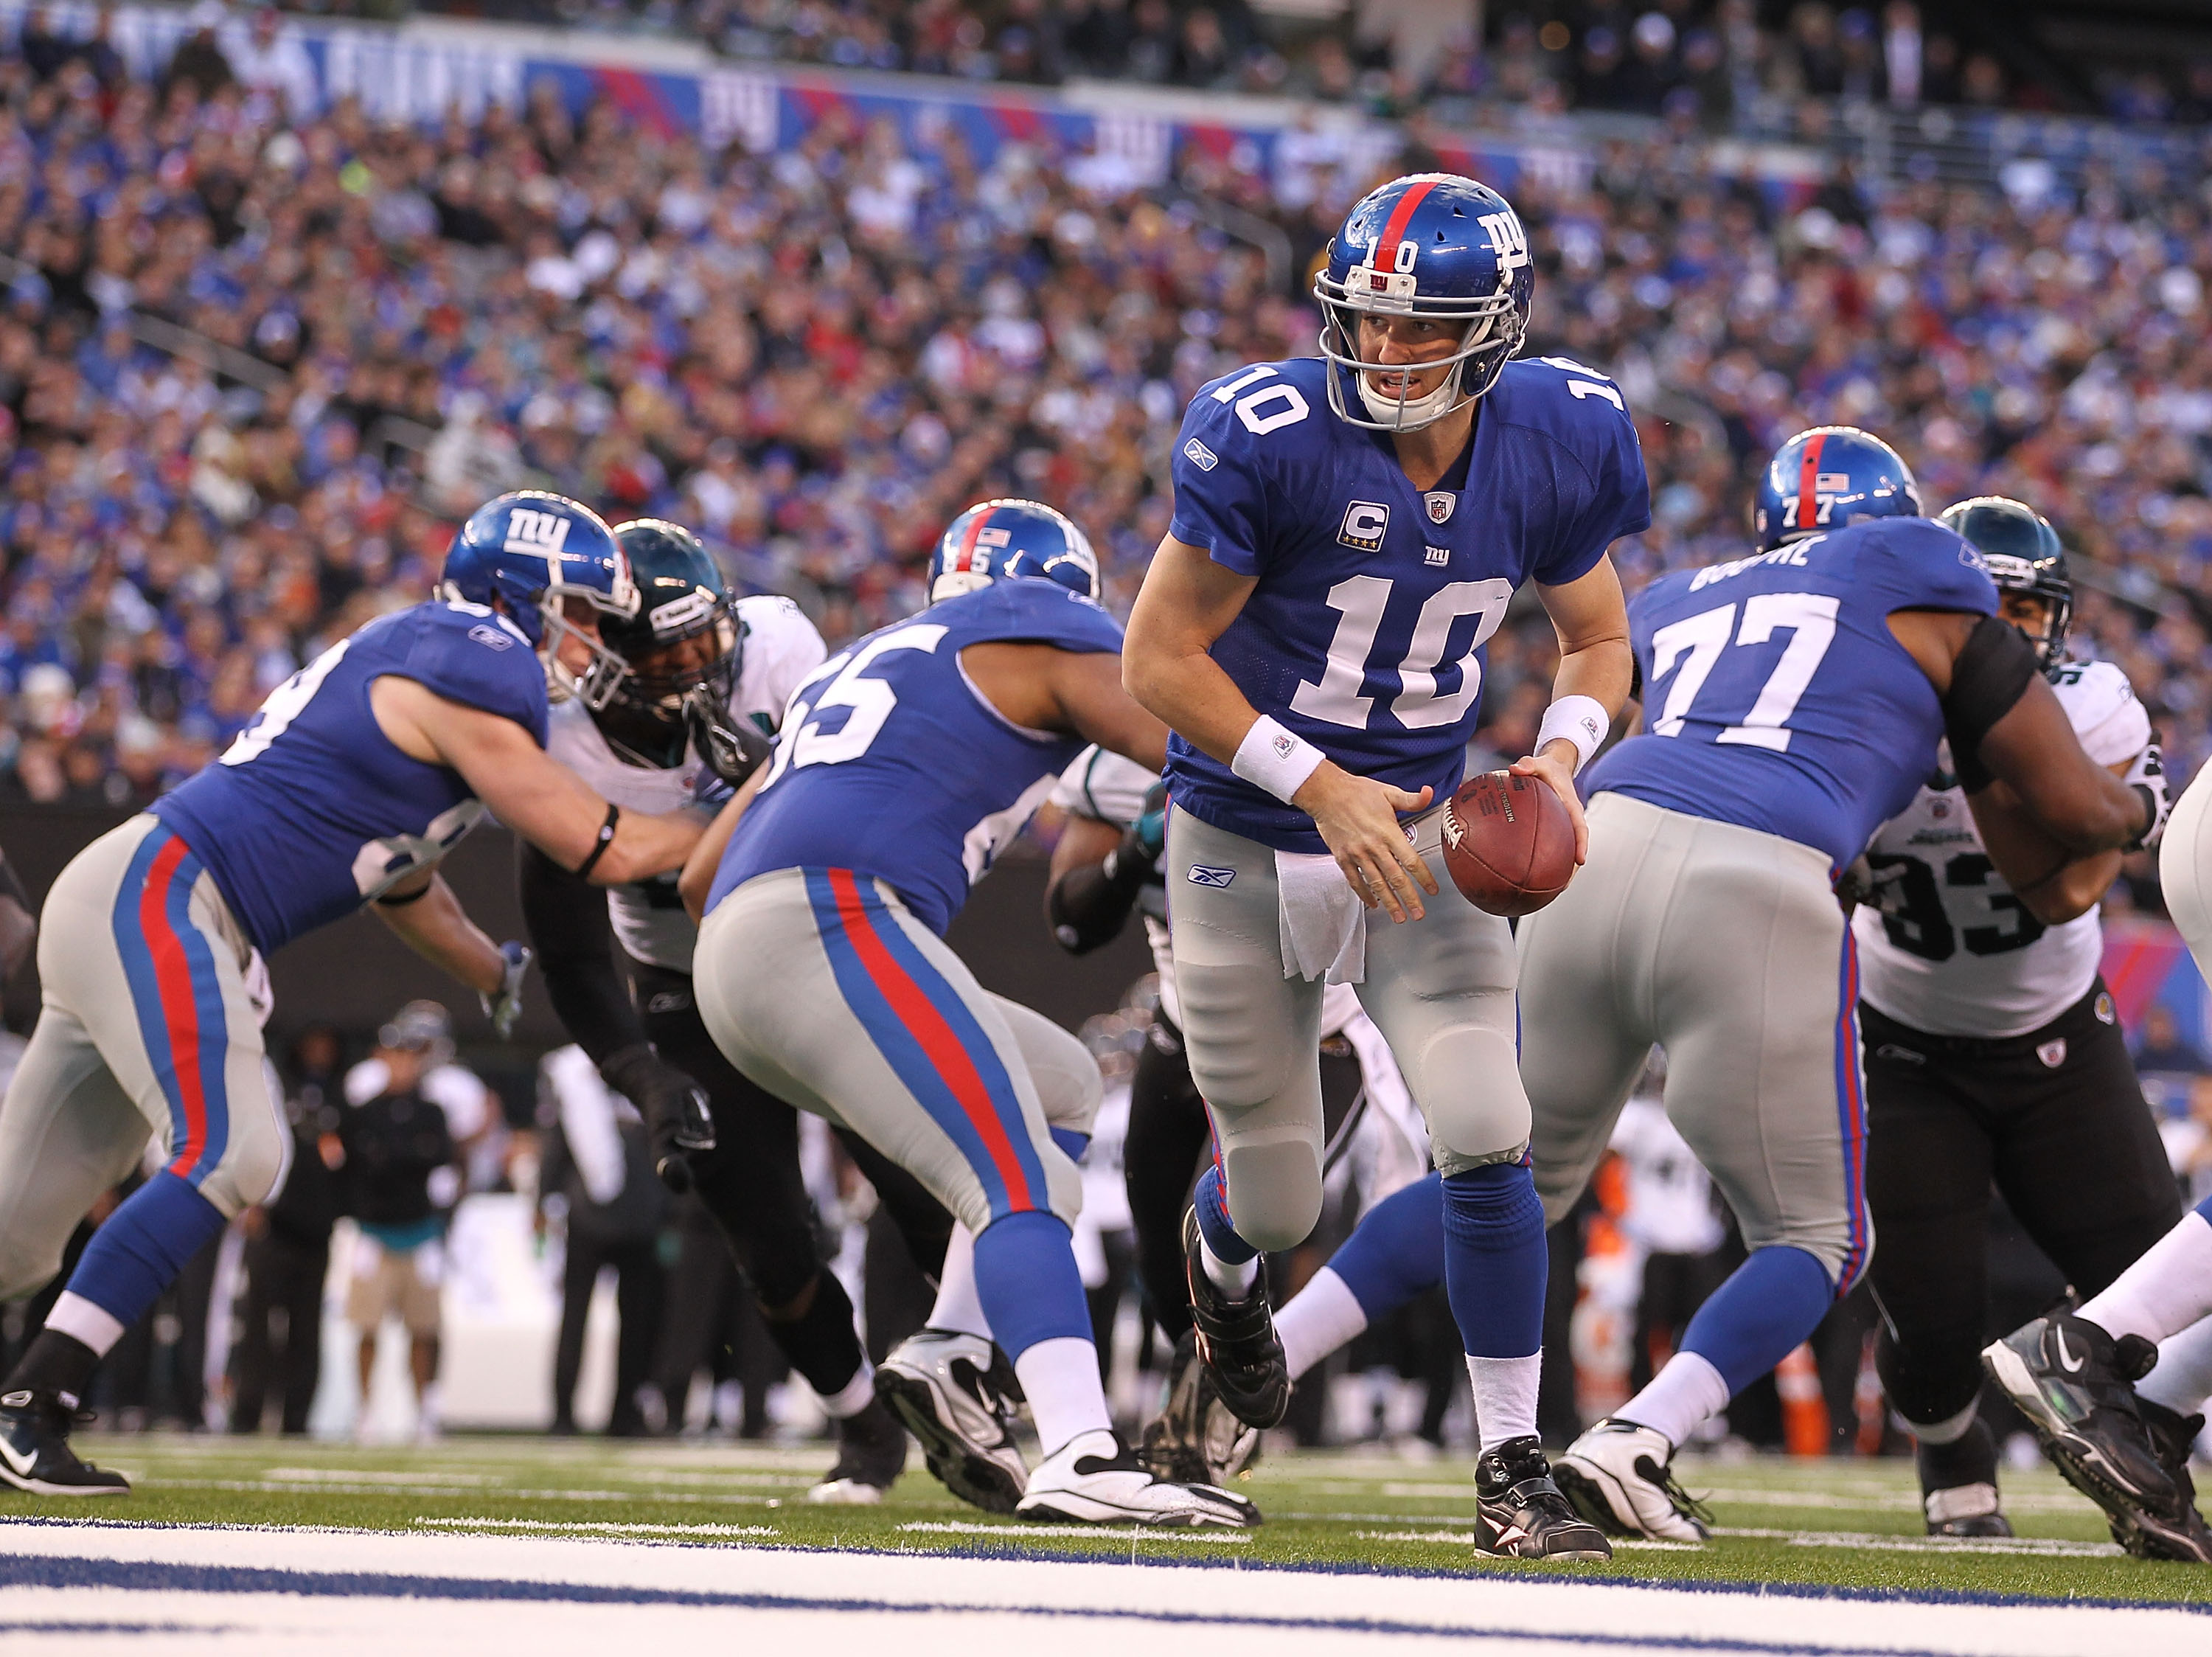 EAST RUTHERFORD, NJ - NOVEMBER 28:  Eli Manning #10 of the New York Giants in action against the Jacksonville Jaguars during their game on November 28, 2010 at The New Meadowlands Stadium in East Rutherford, New Jersey.  (Photo by Al Bello/Getty Images)